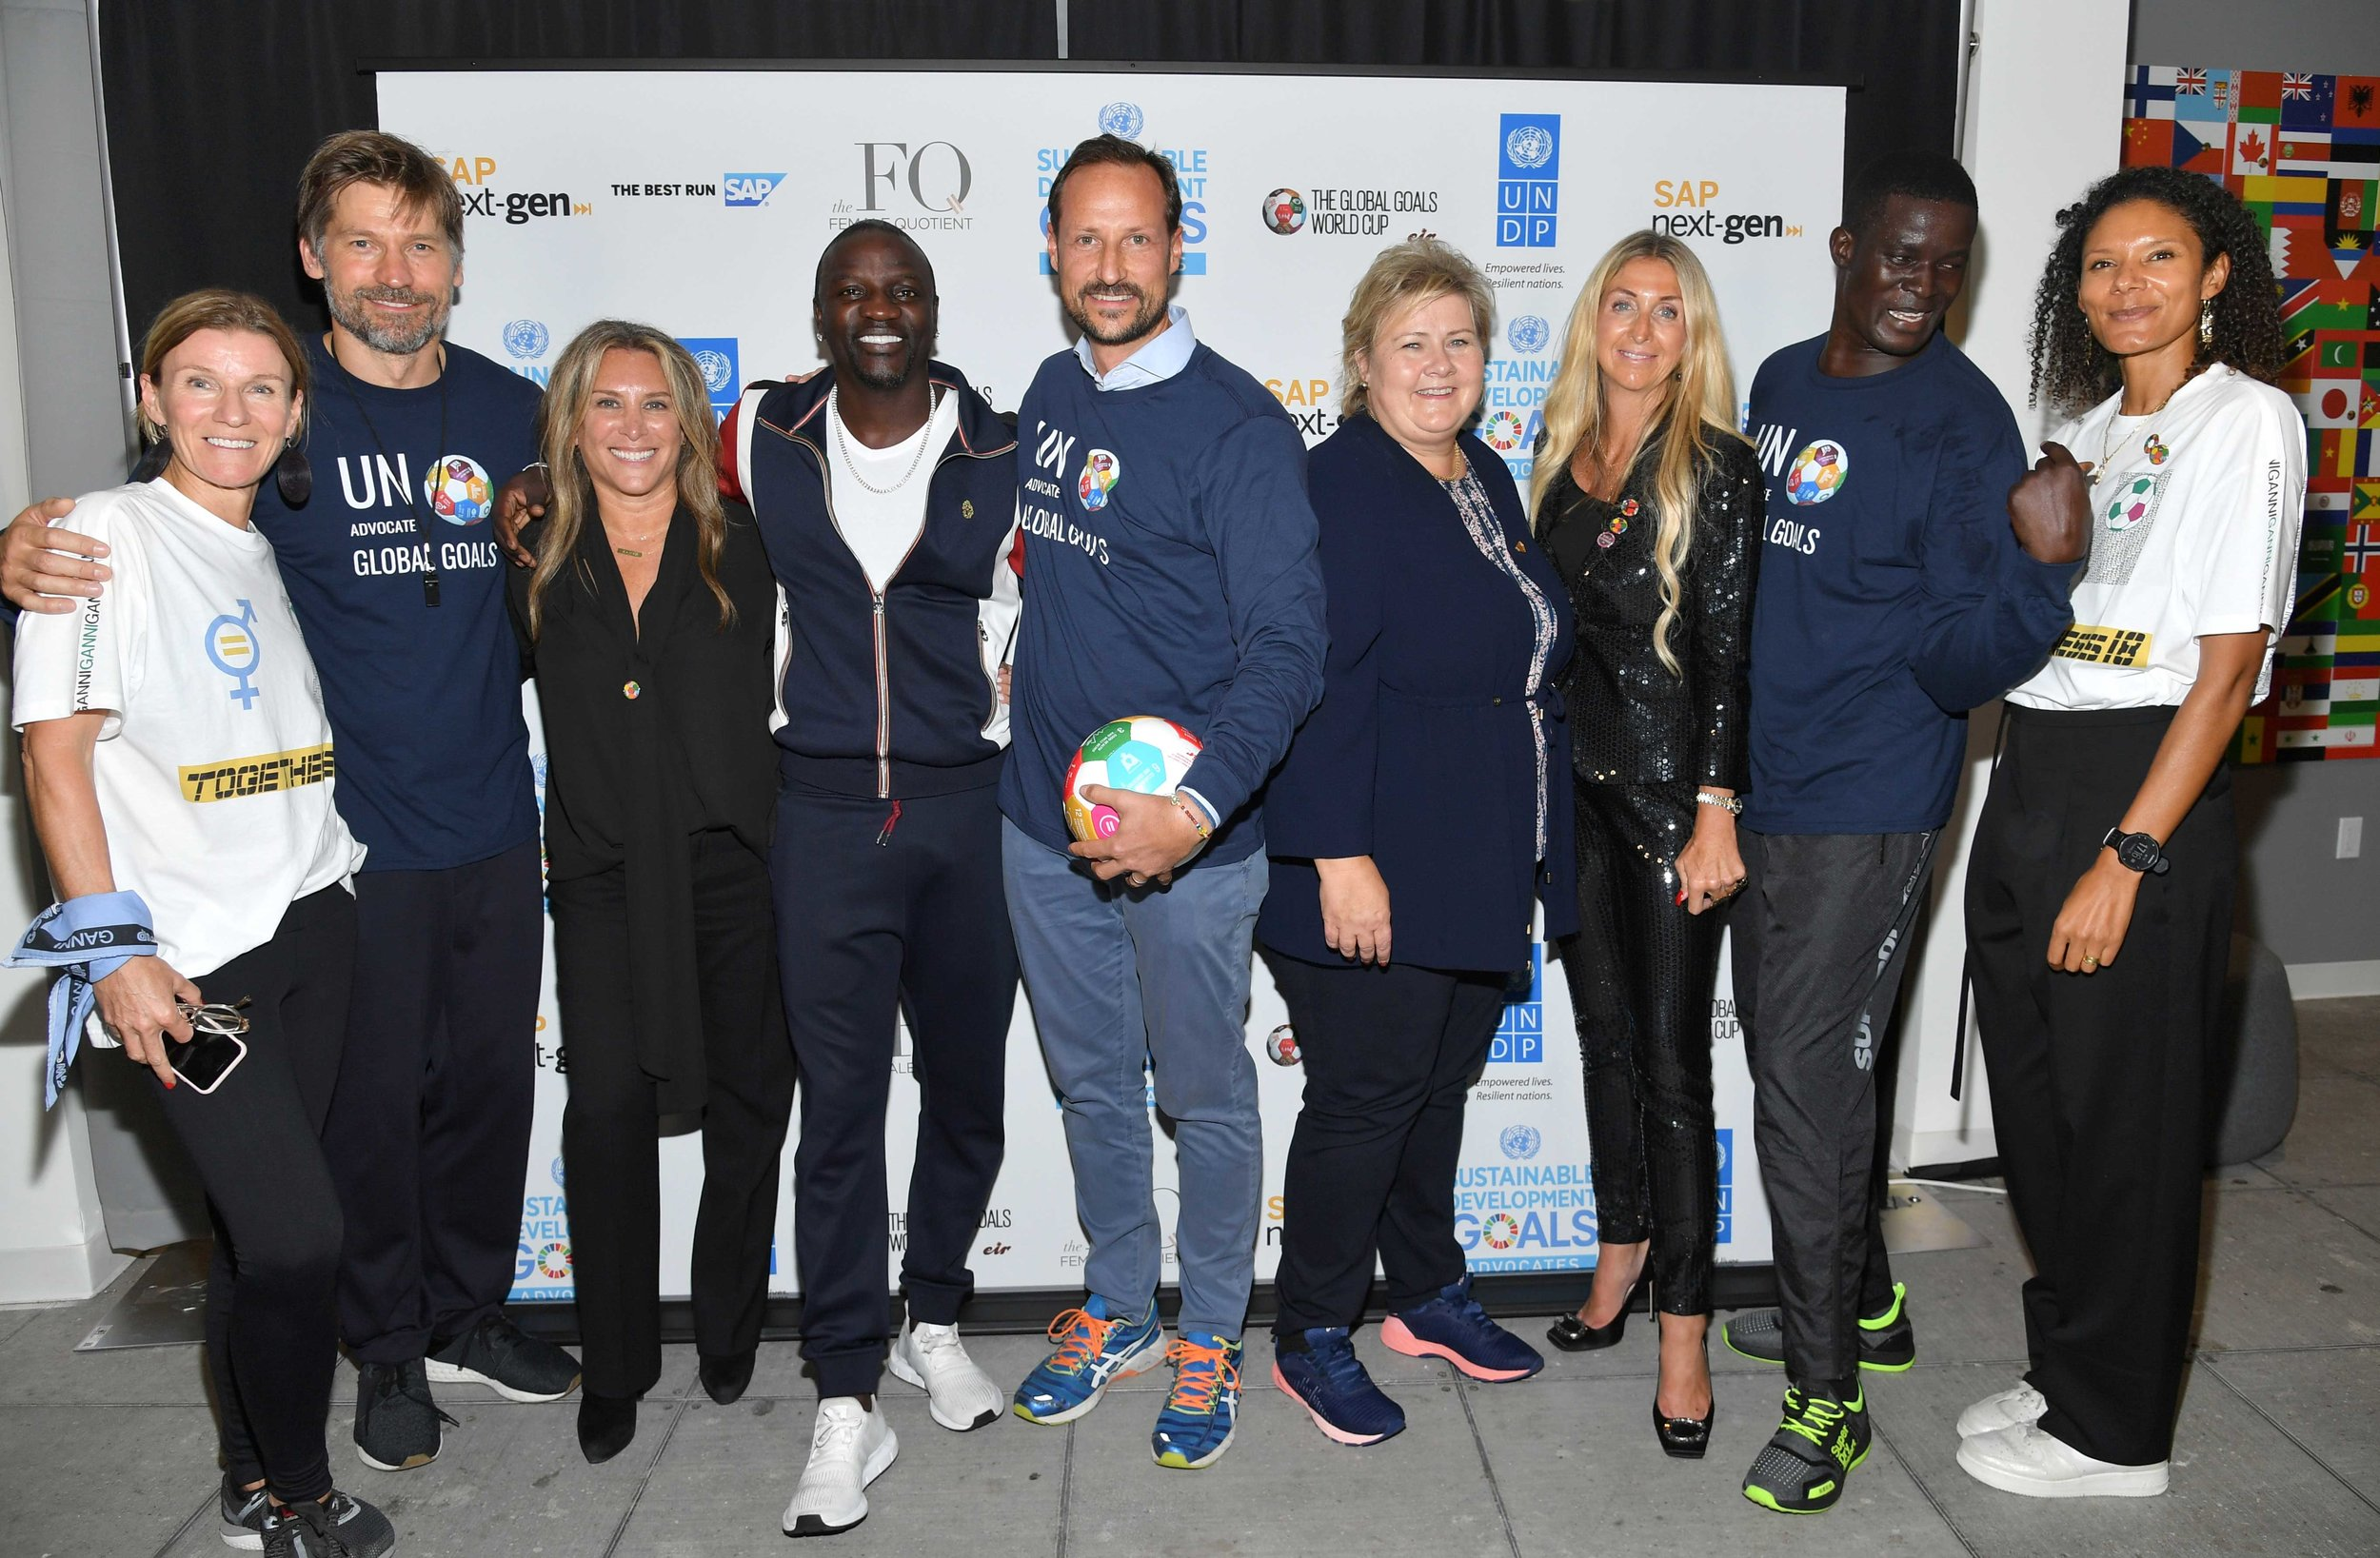 """""""Some of the goals are so big: End poverty, combate climate change. None of us can do this on our own, but all of us together can make a real difference."""" –  actor Nikolaj Coster Waldau.  Citizens Agenda partners, GGWCup Finals New York 2018. Photo © Getty -  click for download ."""